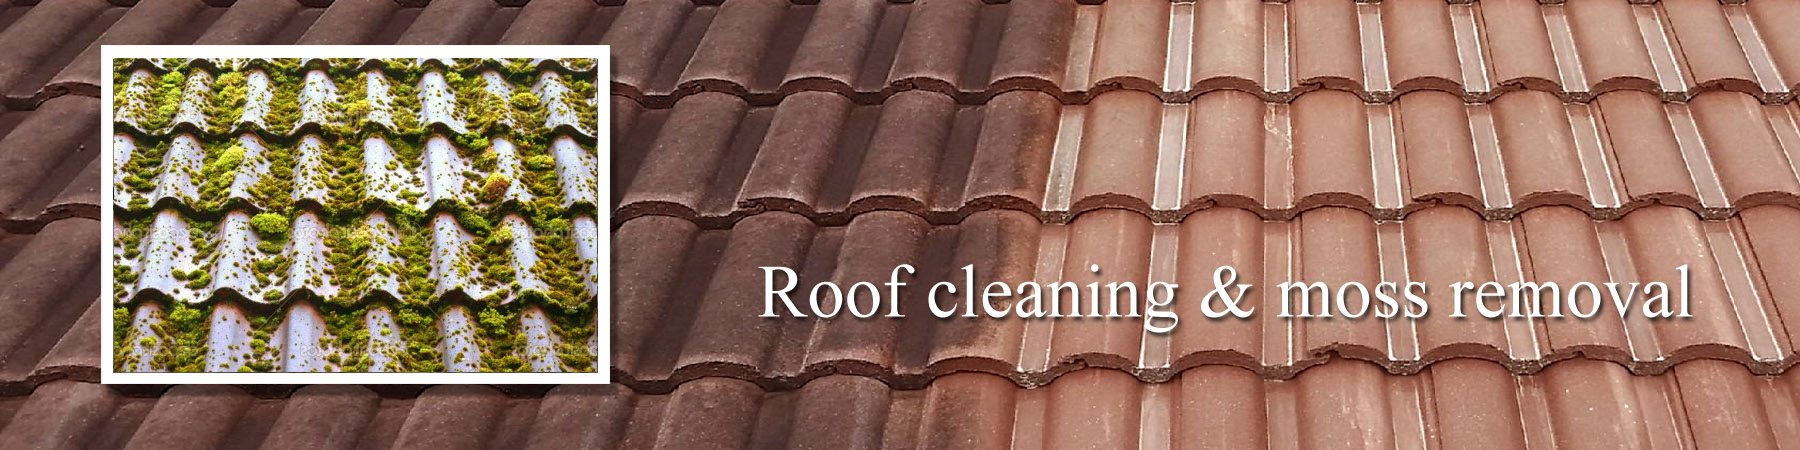 Roof cleaning Waltham Cross J R Cleaning